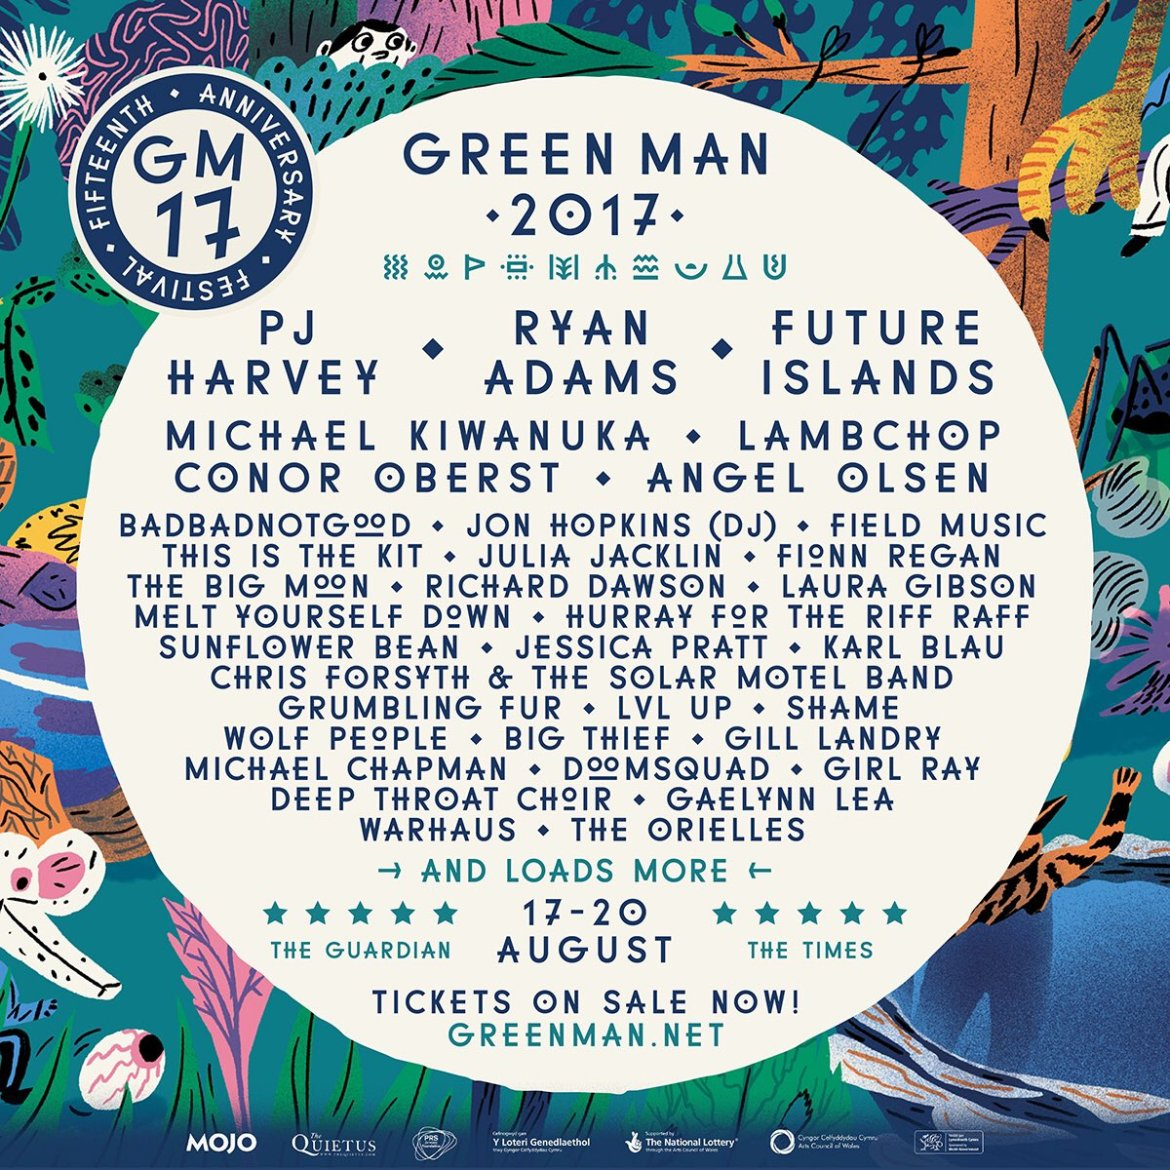 NEWS: Green Man Festival announces first three 2017 headliners